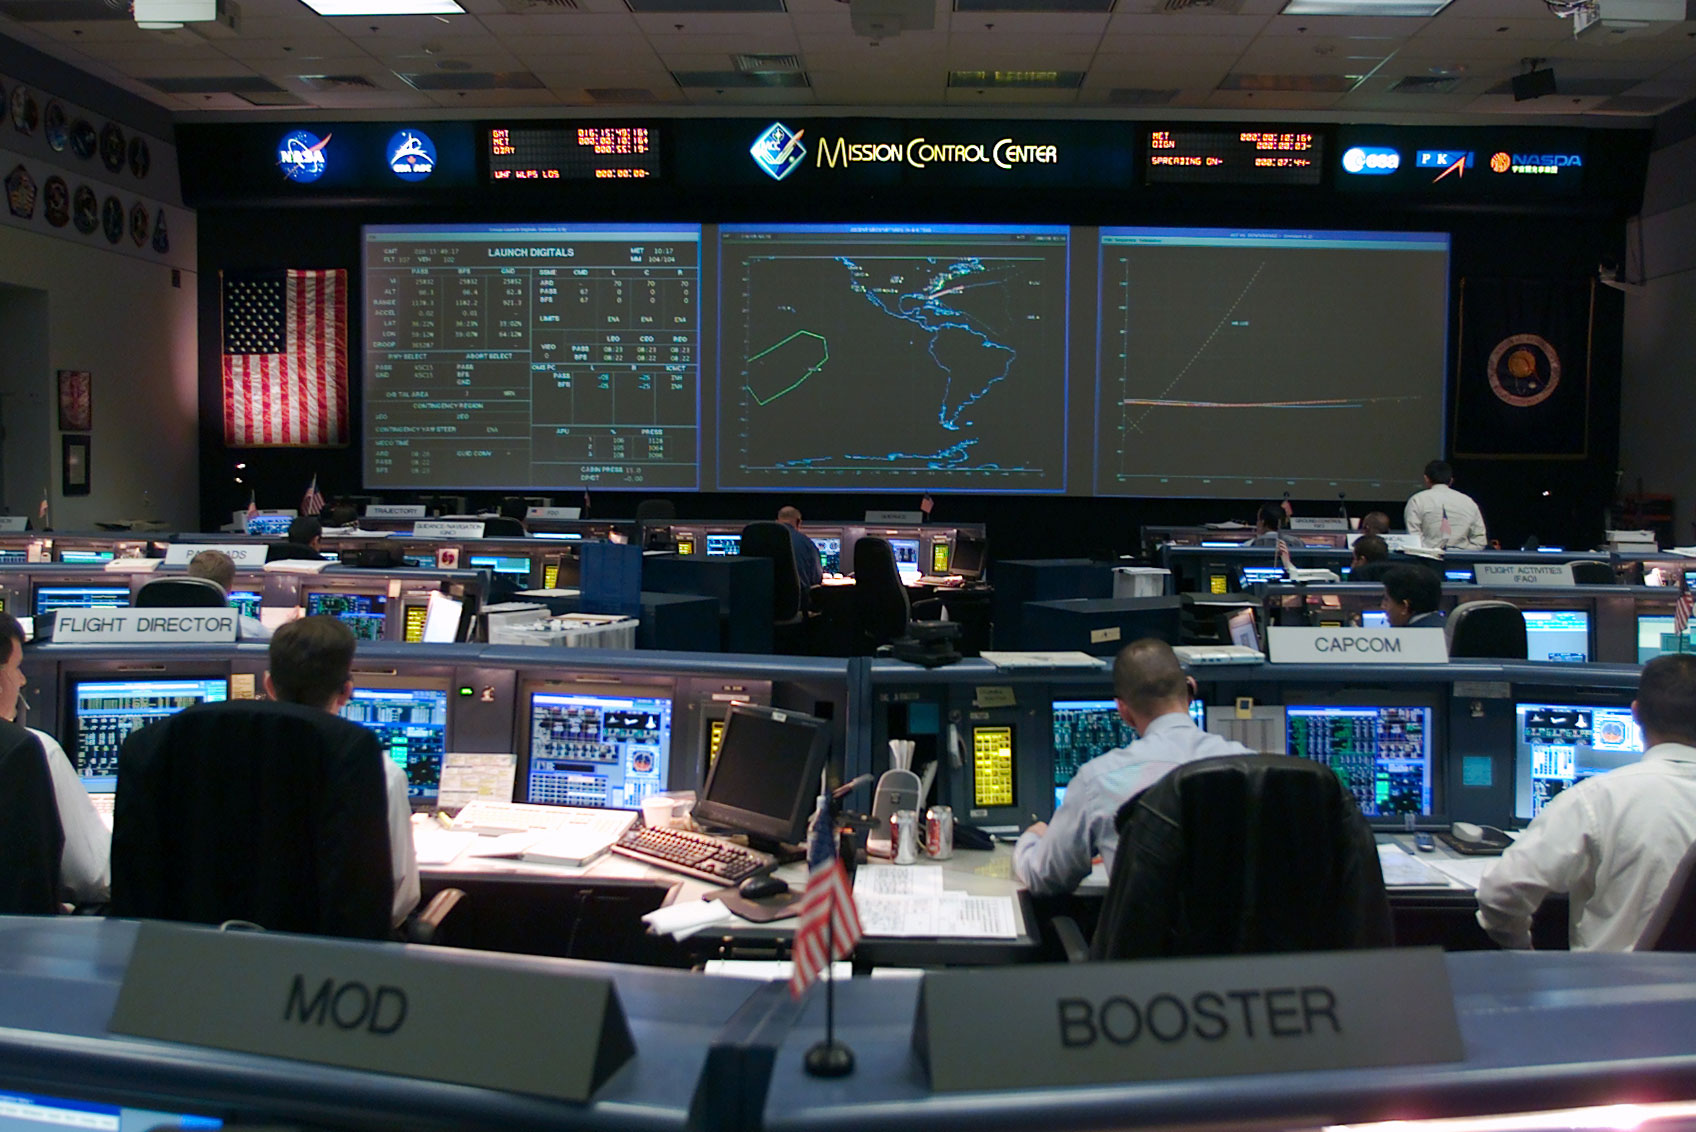 NASA Mission Control Room Pics About Space